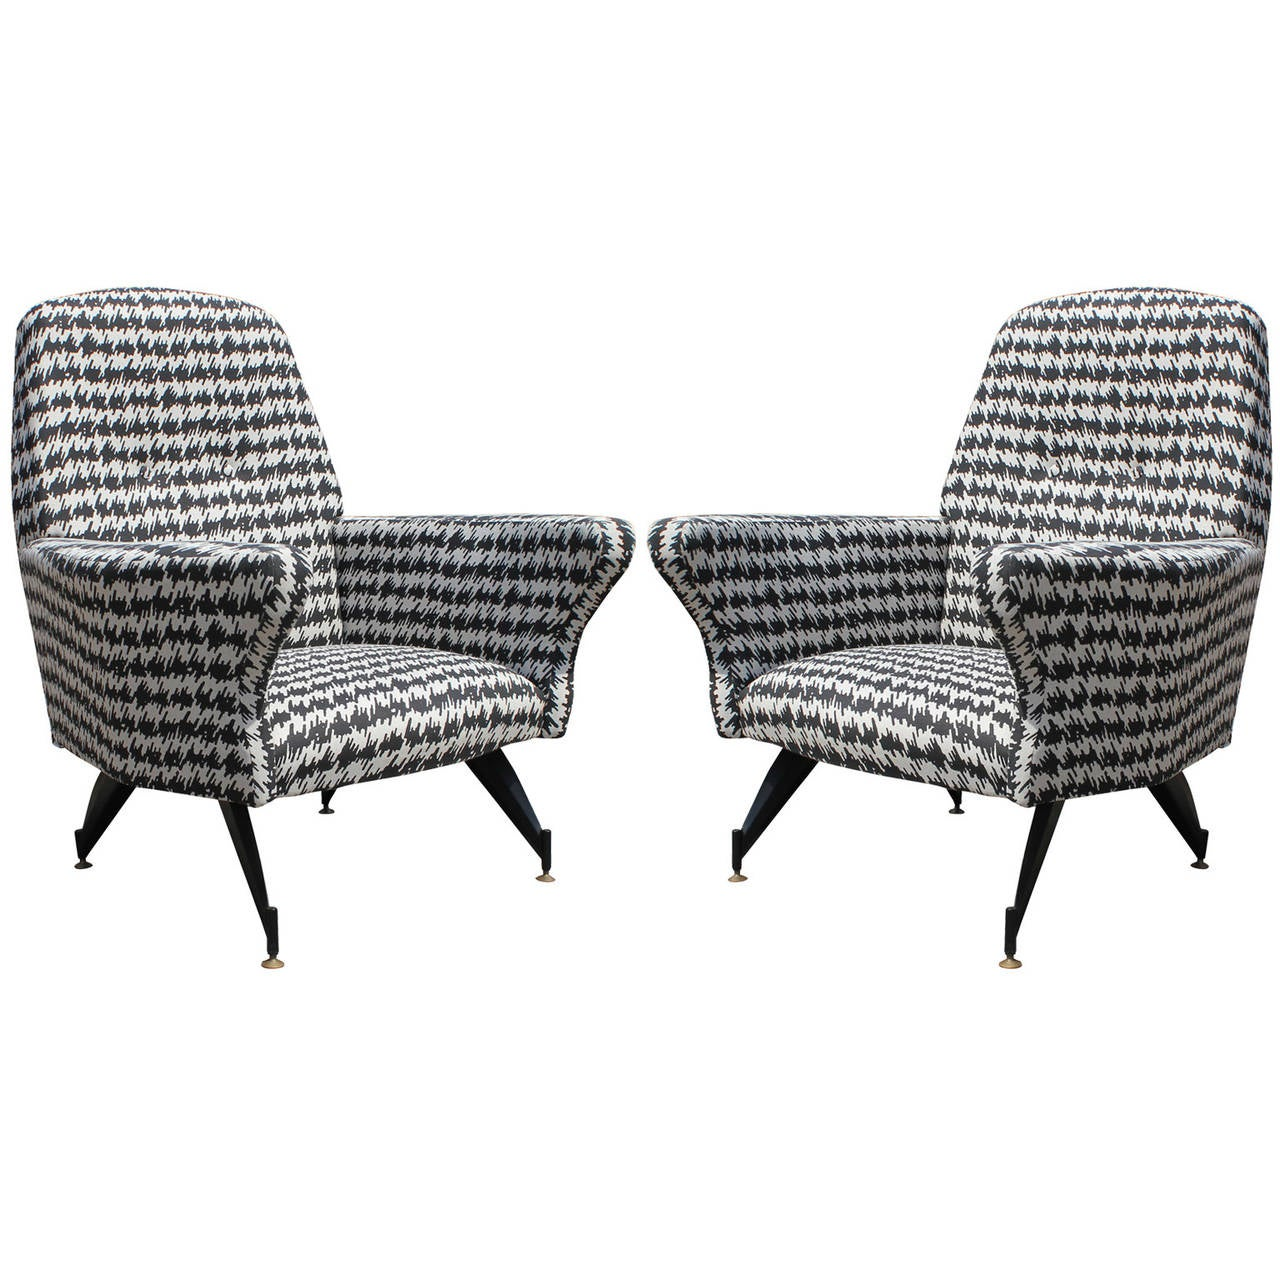 Modern Pair Of Small Scale Italian Lounge Chairs In Houndstooth For Sale